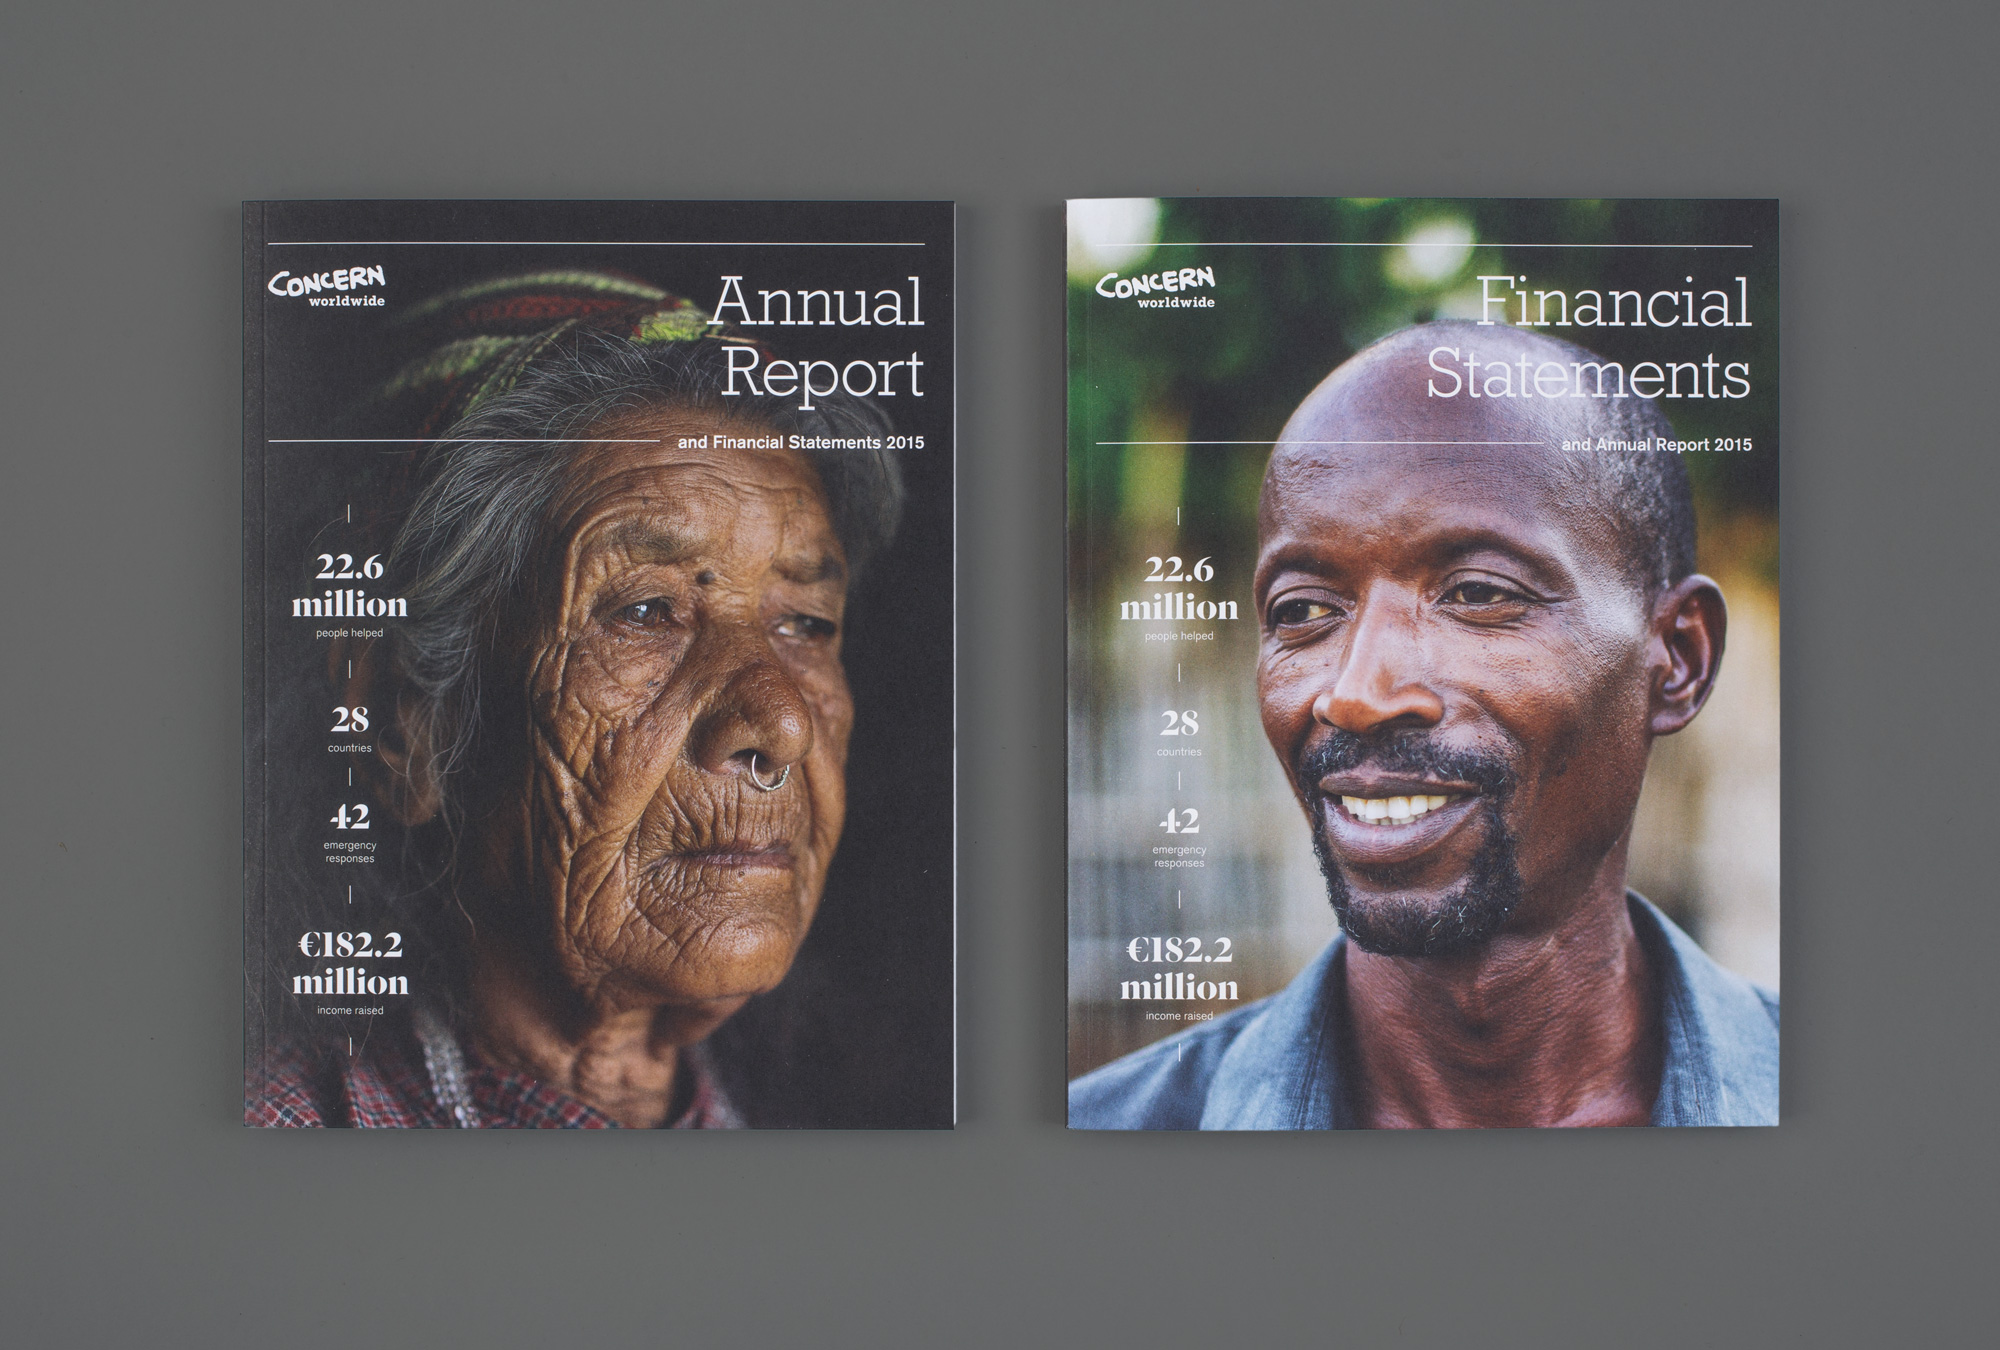 Cover image: Concern Worldwide Annual Report